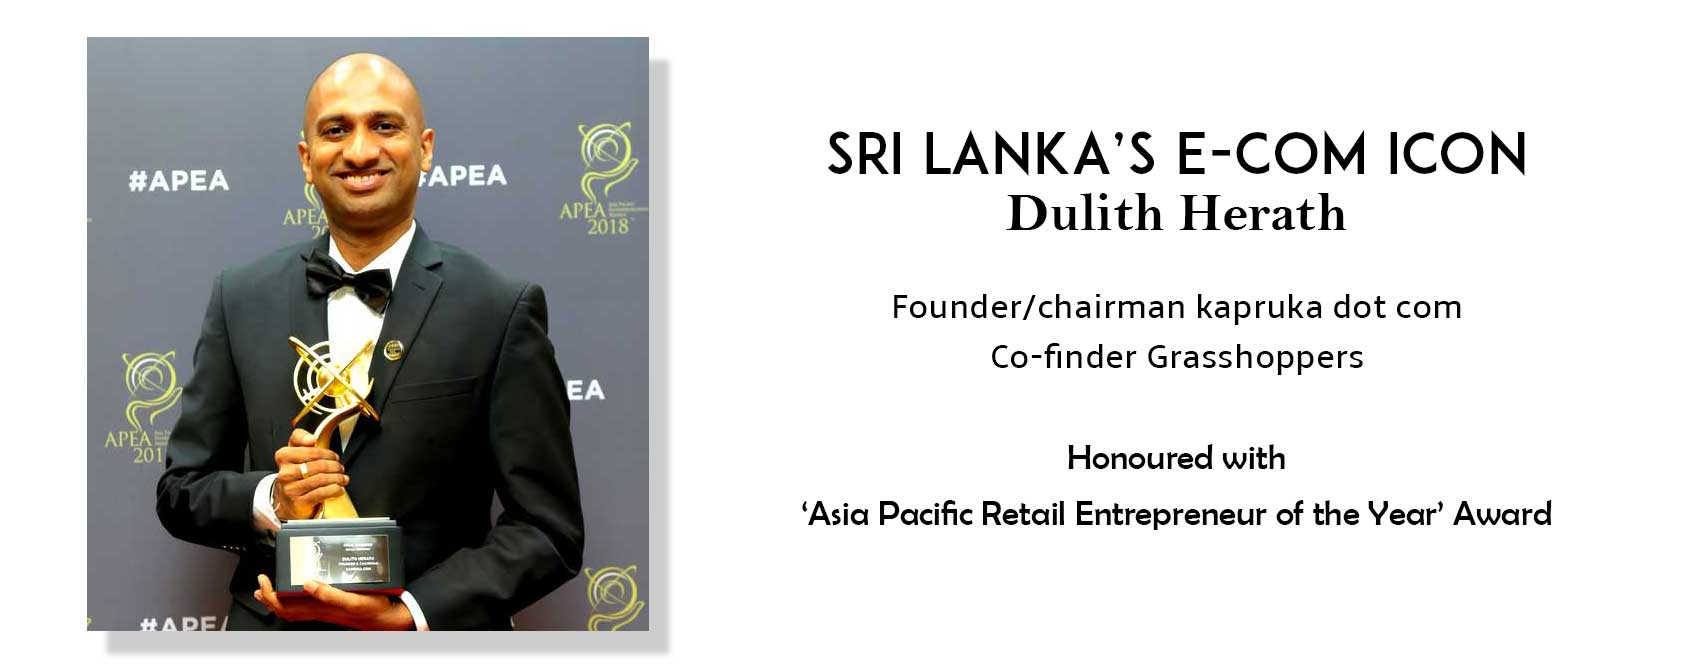 Sri Lanka's E-com Icon Dulith Herath Honoured with 'Asia Pacific Retail Entrepreneur of the Year' Award